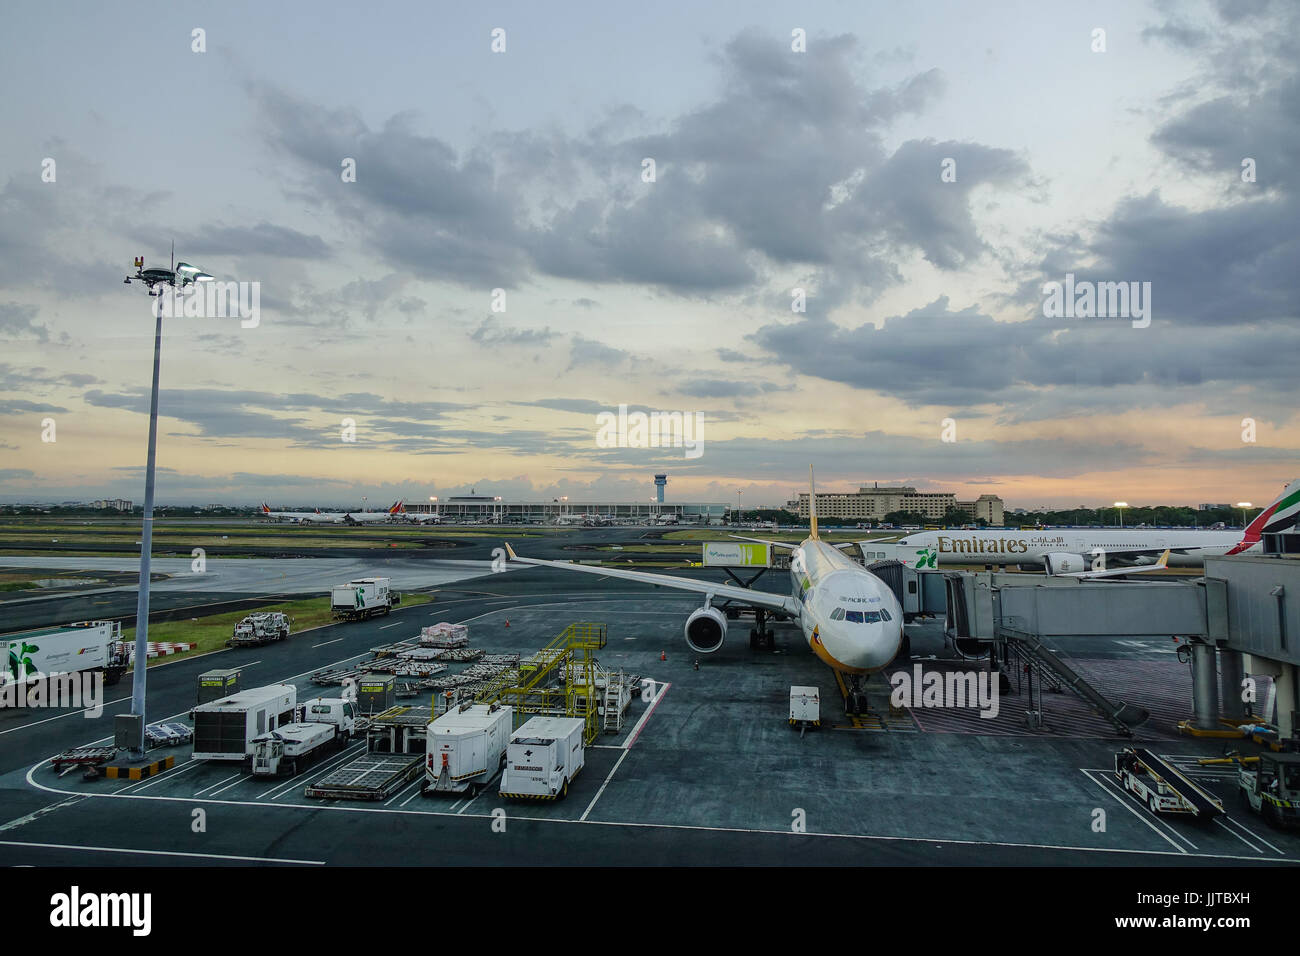 Manila, Philippines - Apr 14, 2017. A civil aircraft docks at Terminal 3 of Ninoy Aquino Airport (NAIA) in Manila, - Stock Image